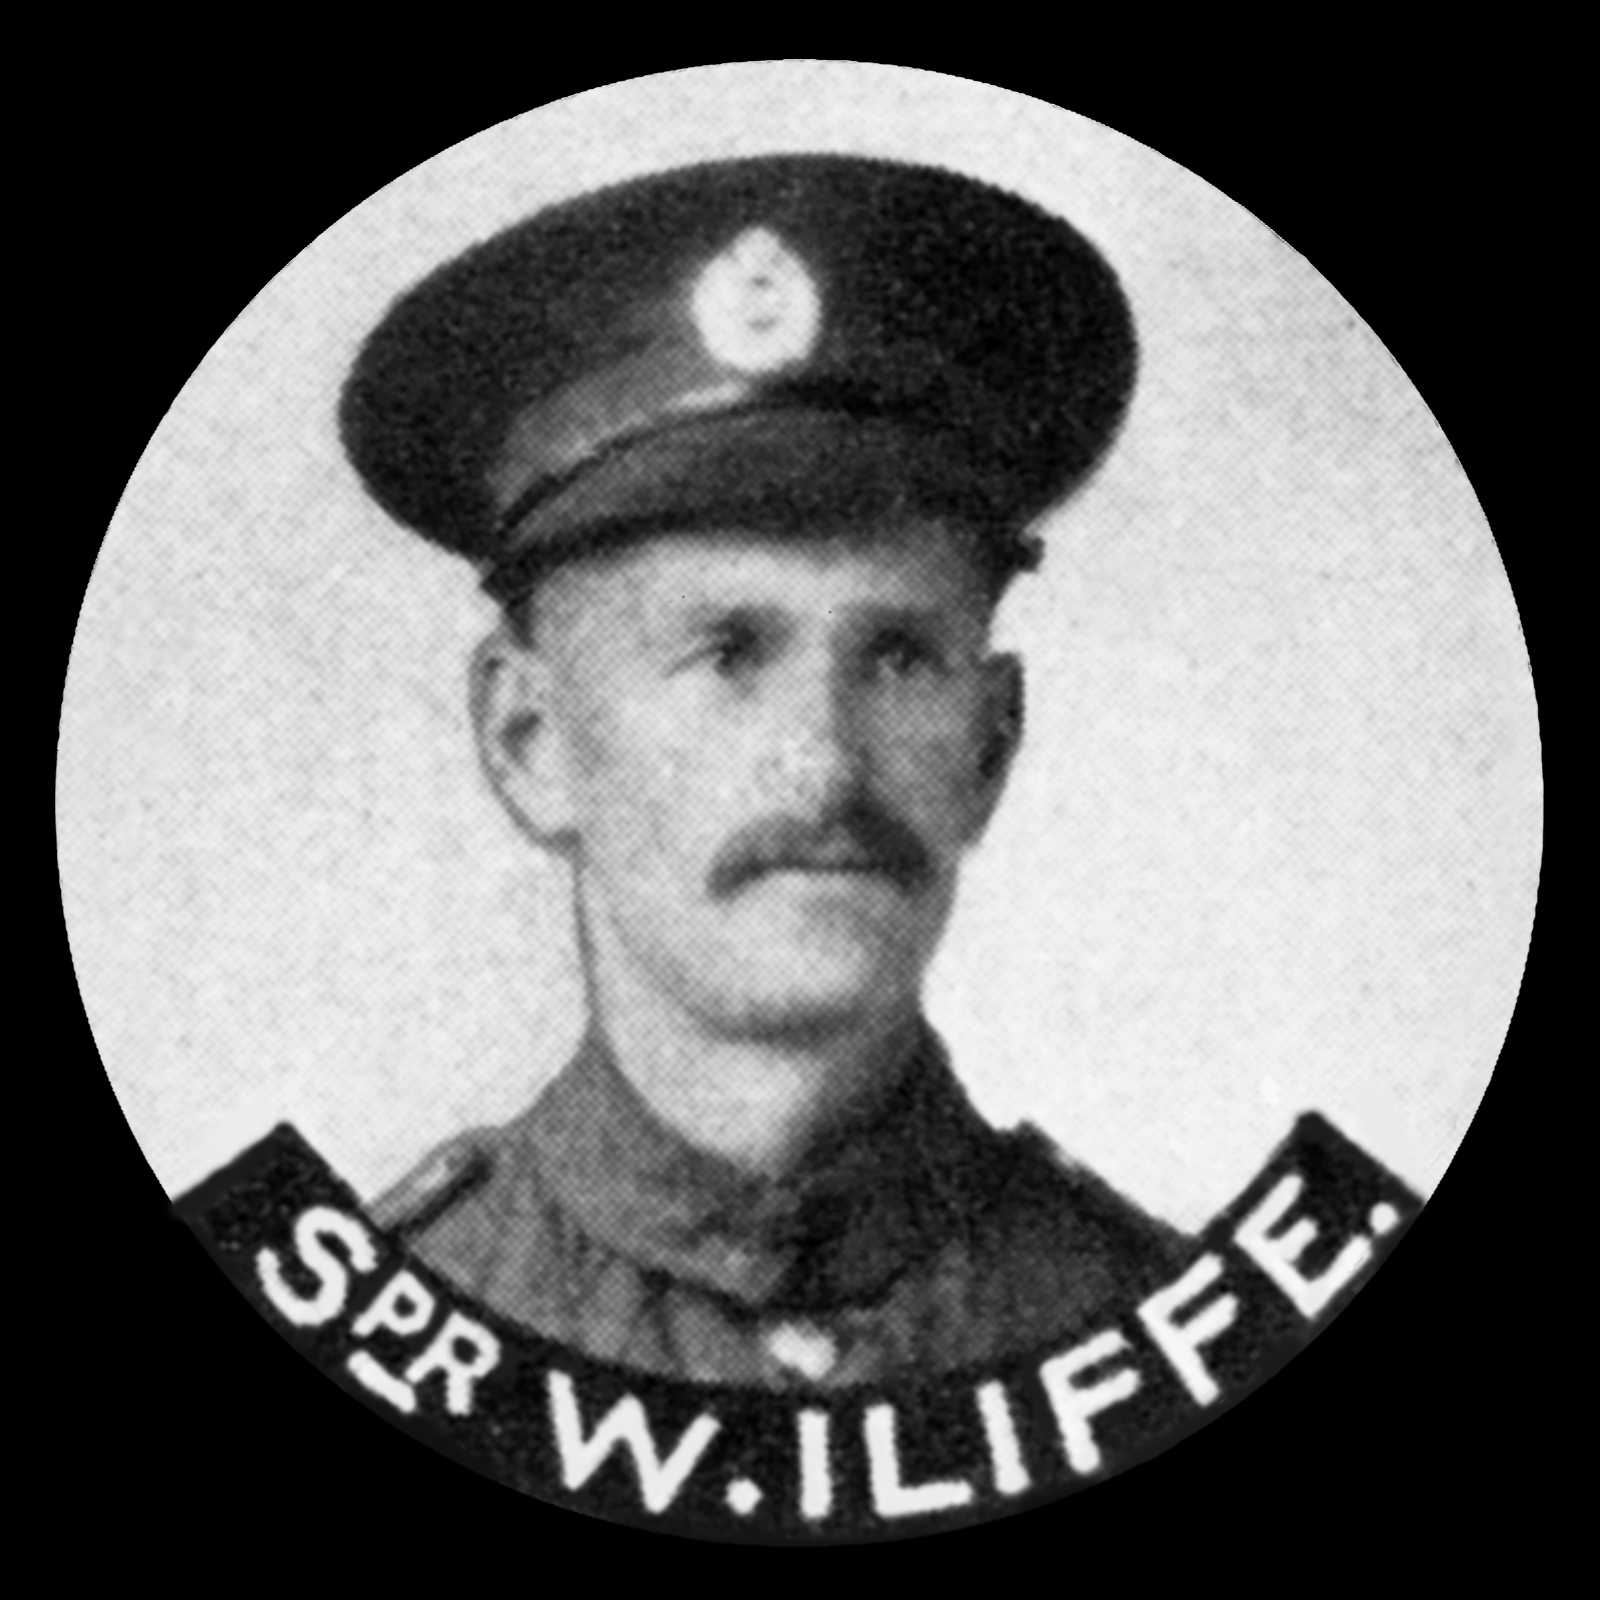 ILIFFE Willoughby